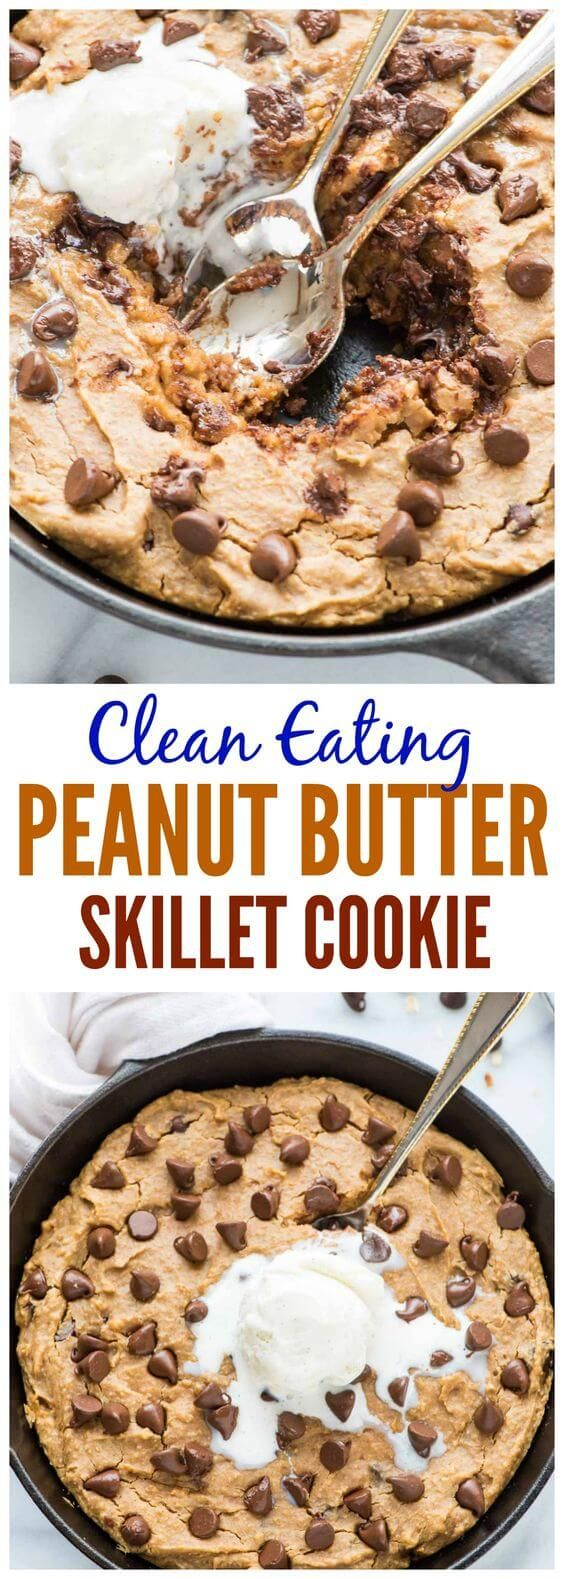 Clean Eating Peanut Butter Skillet Cookie Recipe